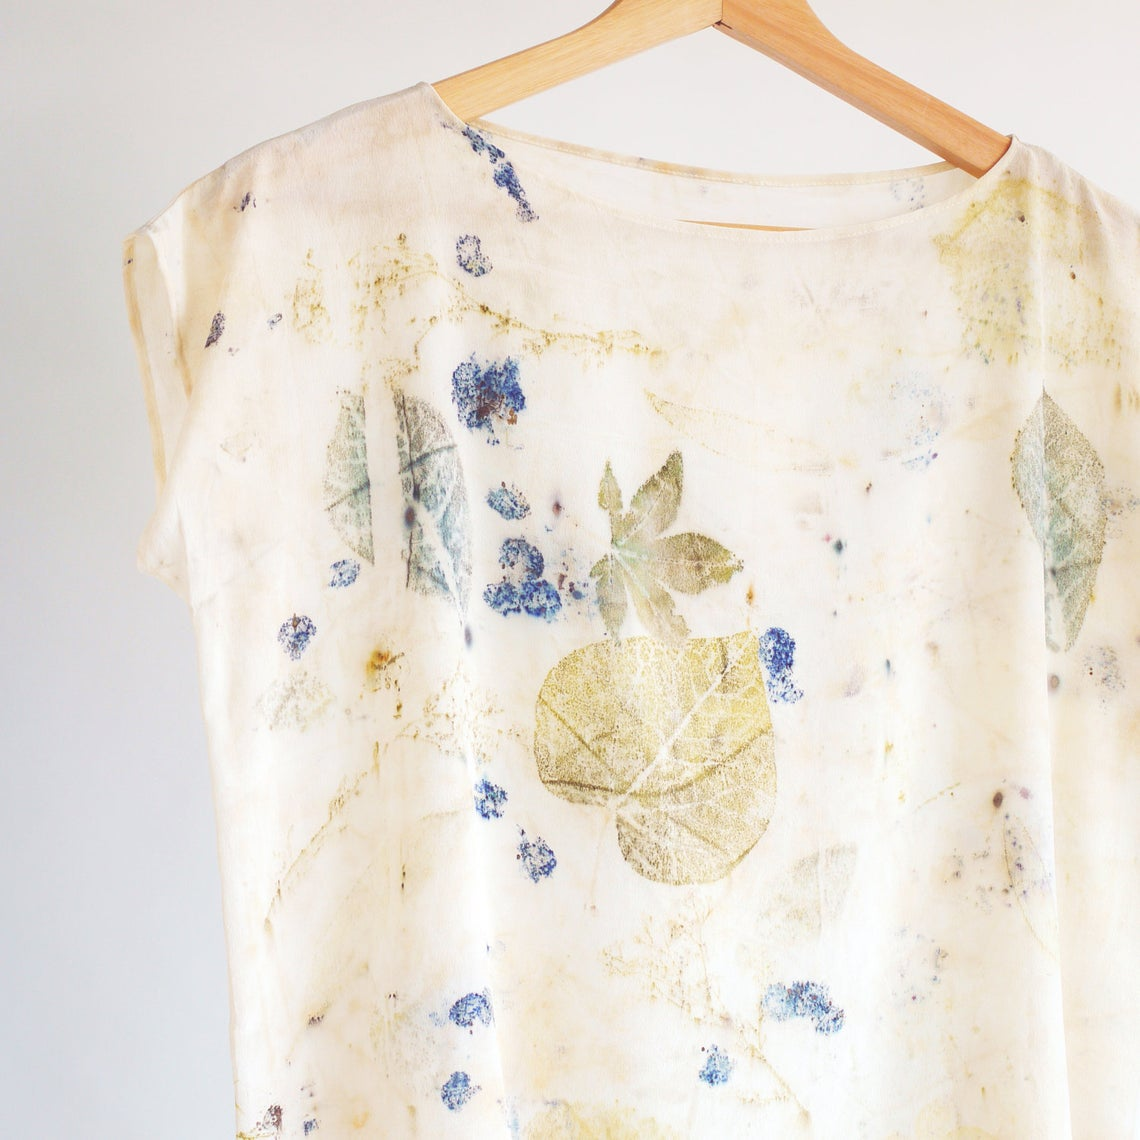 Leaf Print silk top. Eco print top, botanical natural dye silk top.